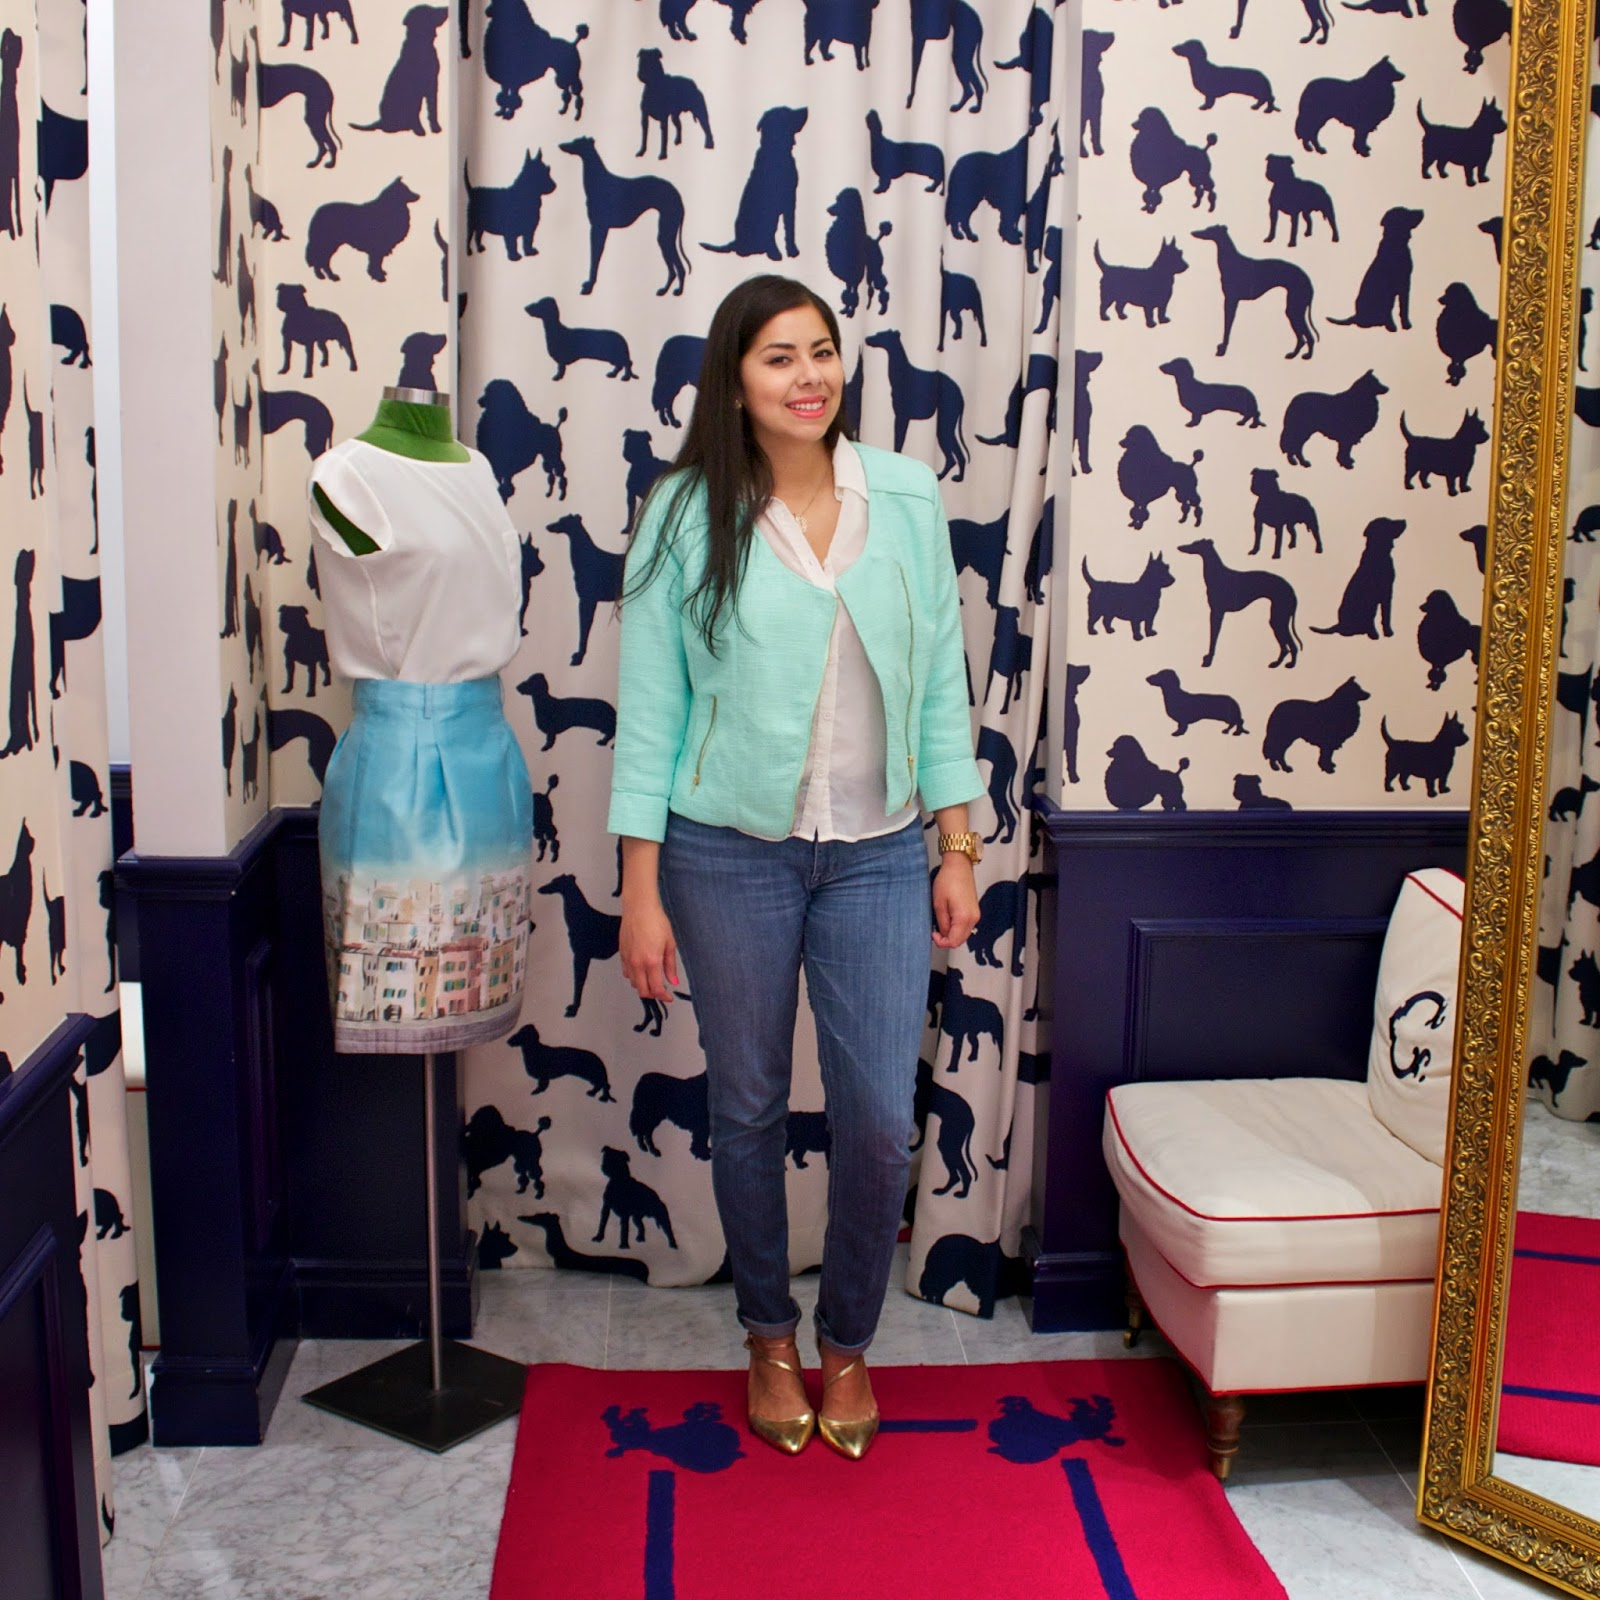 Dog wall paper, c wonder fitting room, san diego style blogger meet up